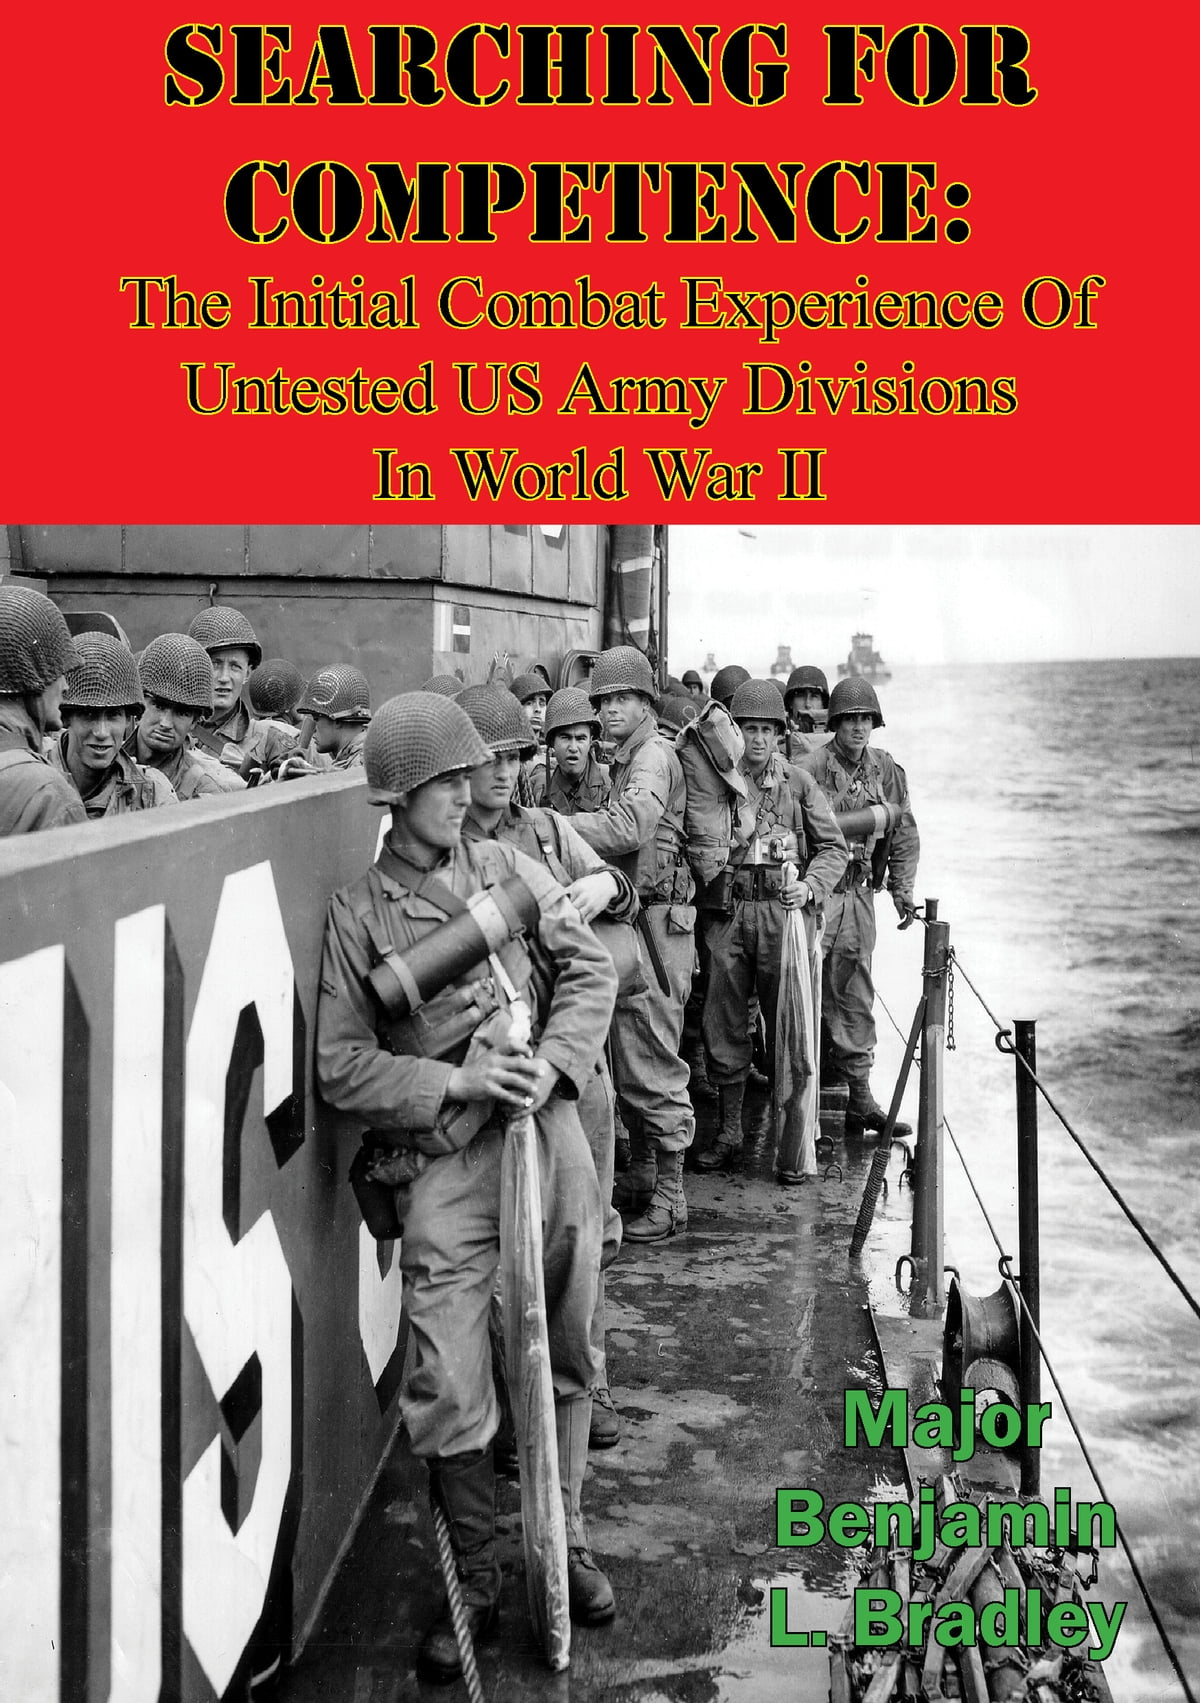 Searching For Competence: The Initial Combat Experience Of Untested US Army  Divisions In World War II ebook by Major Benjamin L  Bradley - Rakuten